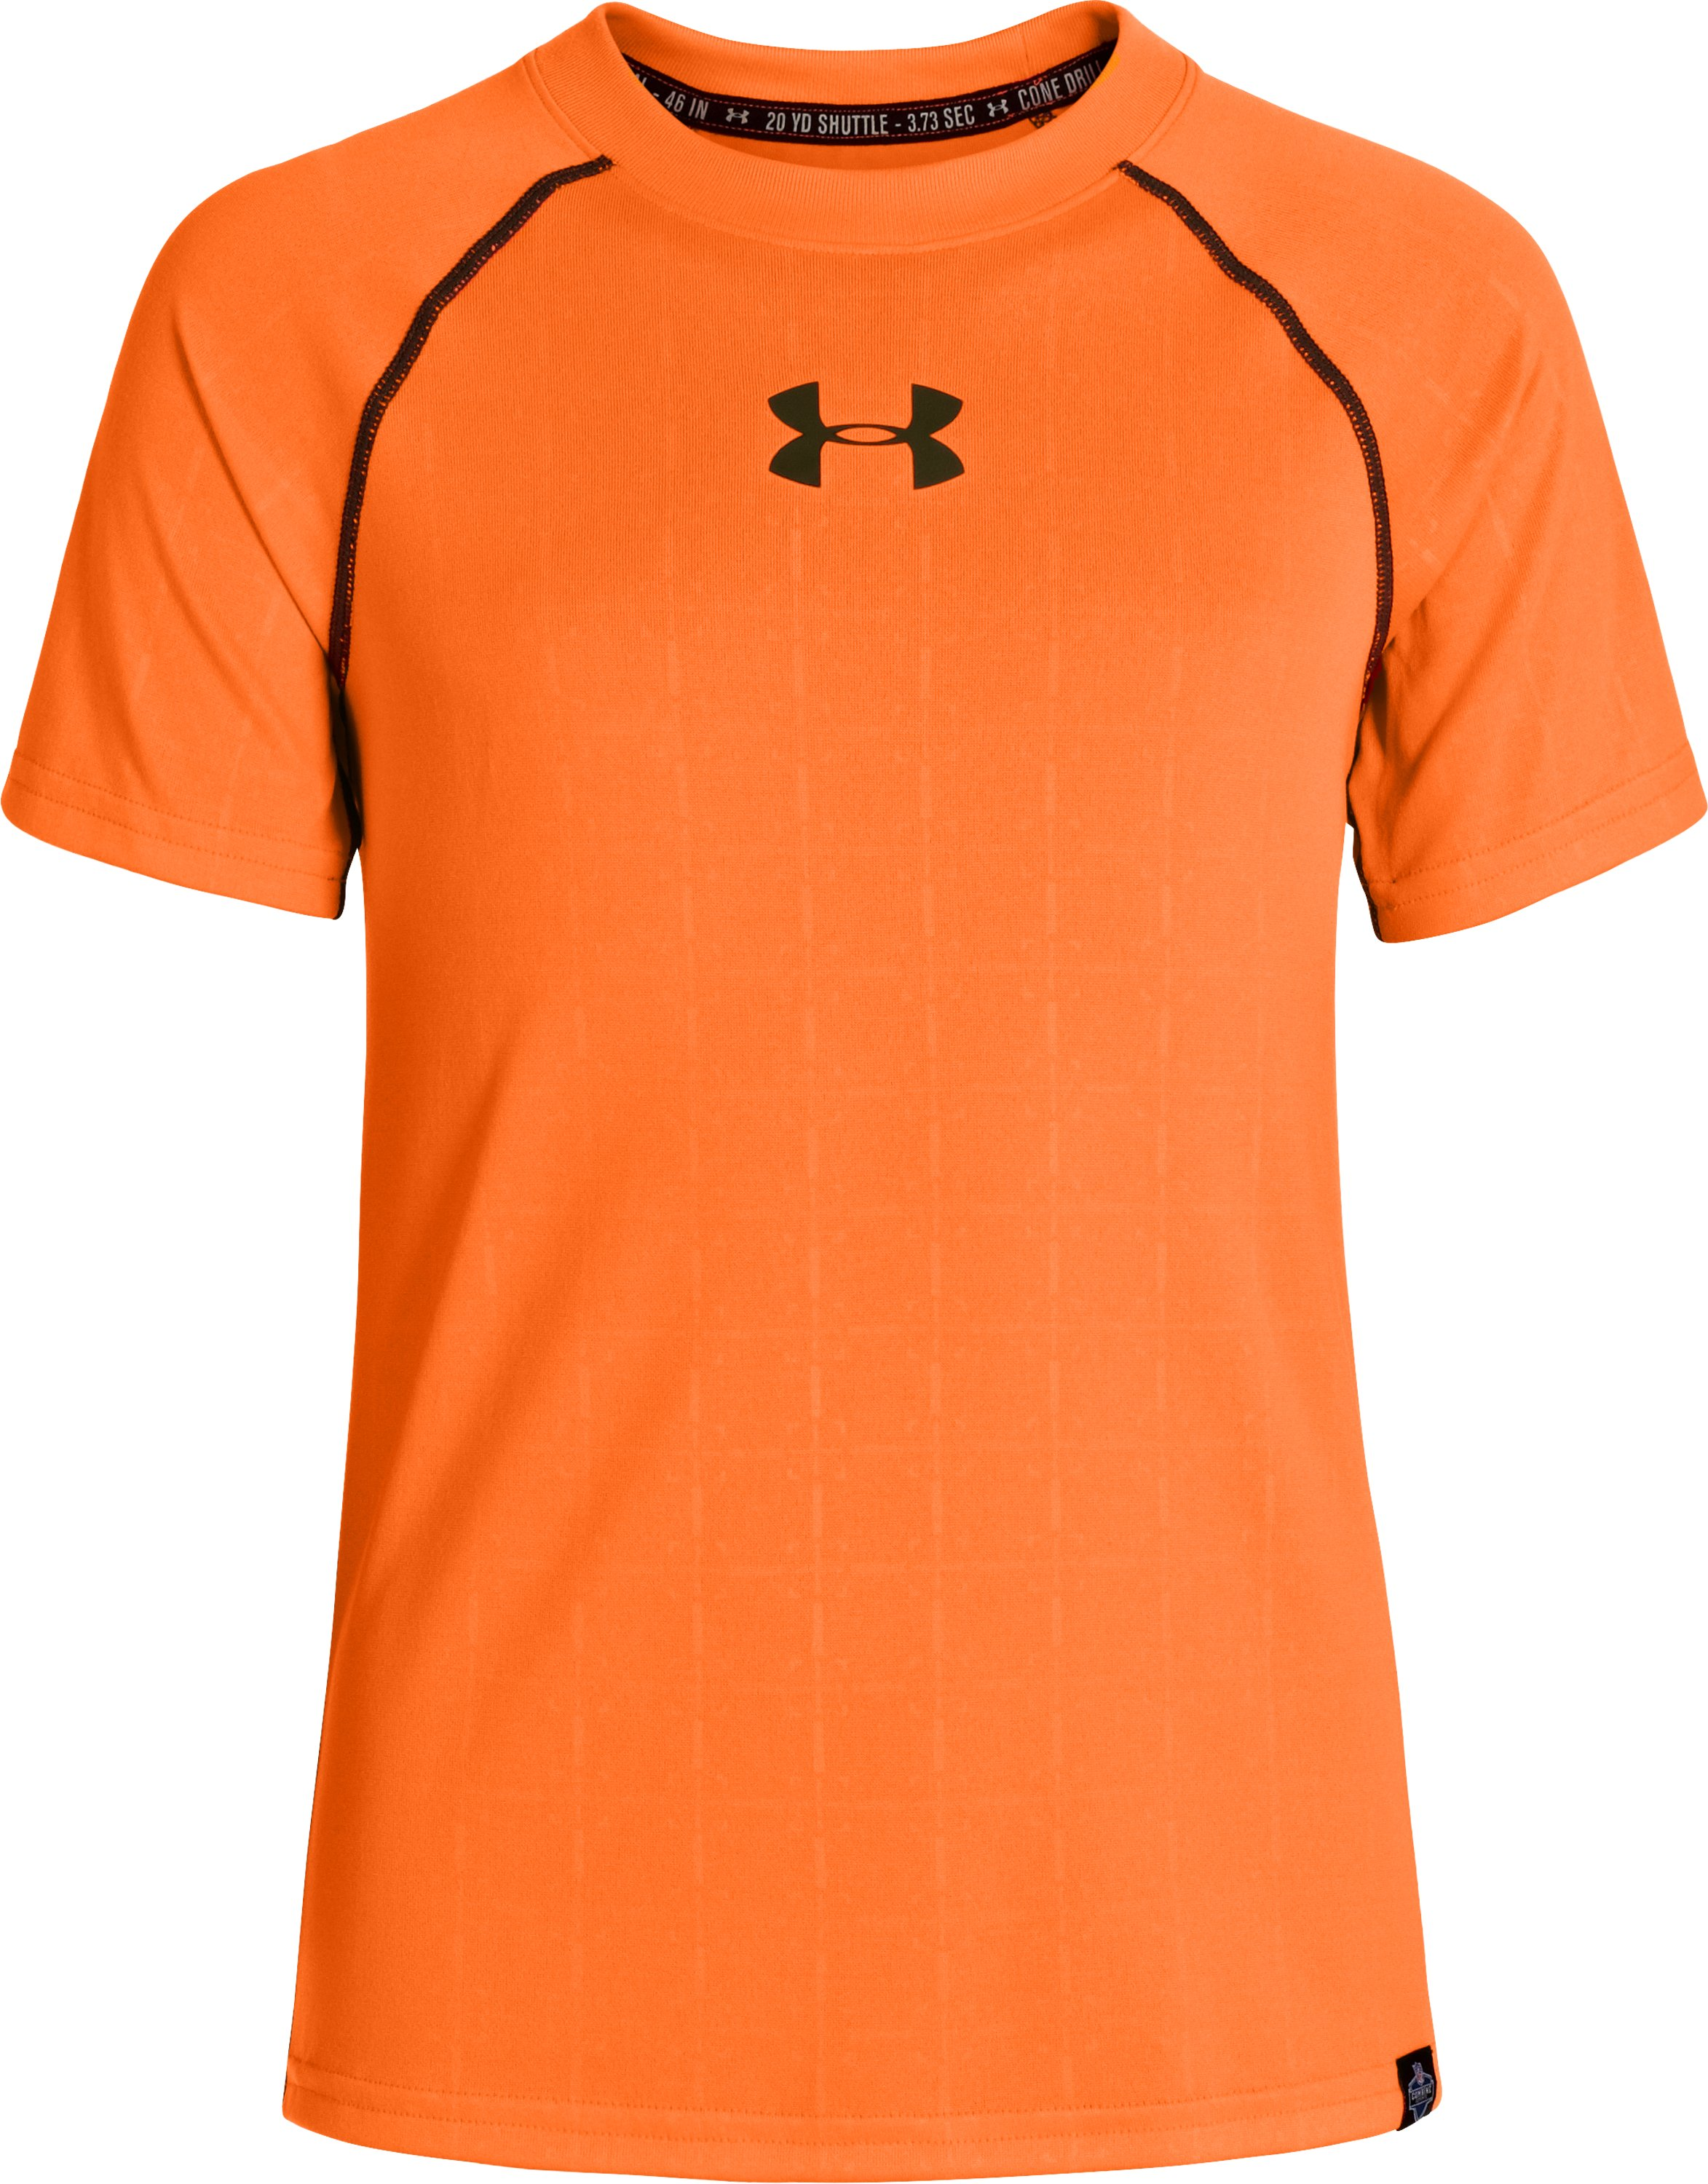 Boys' NFL Combine Authentic Training T-Shirt, Blaze Orange, zoomed image